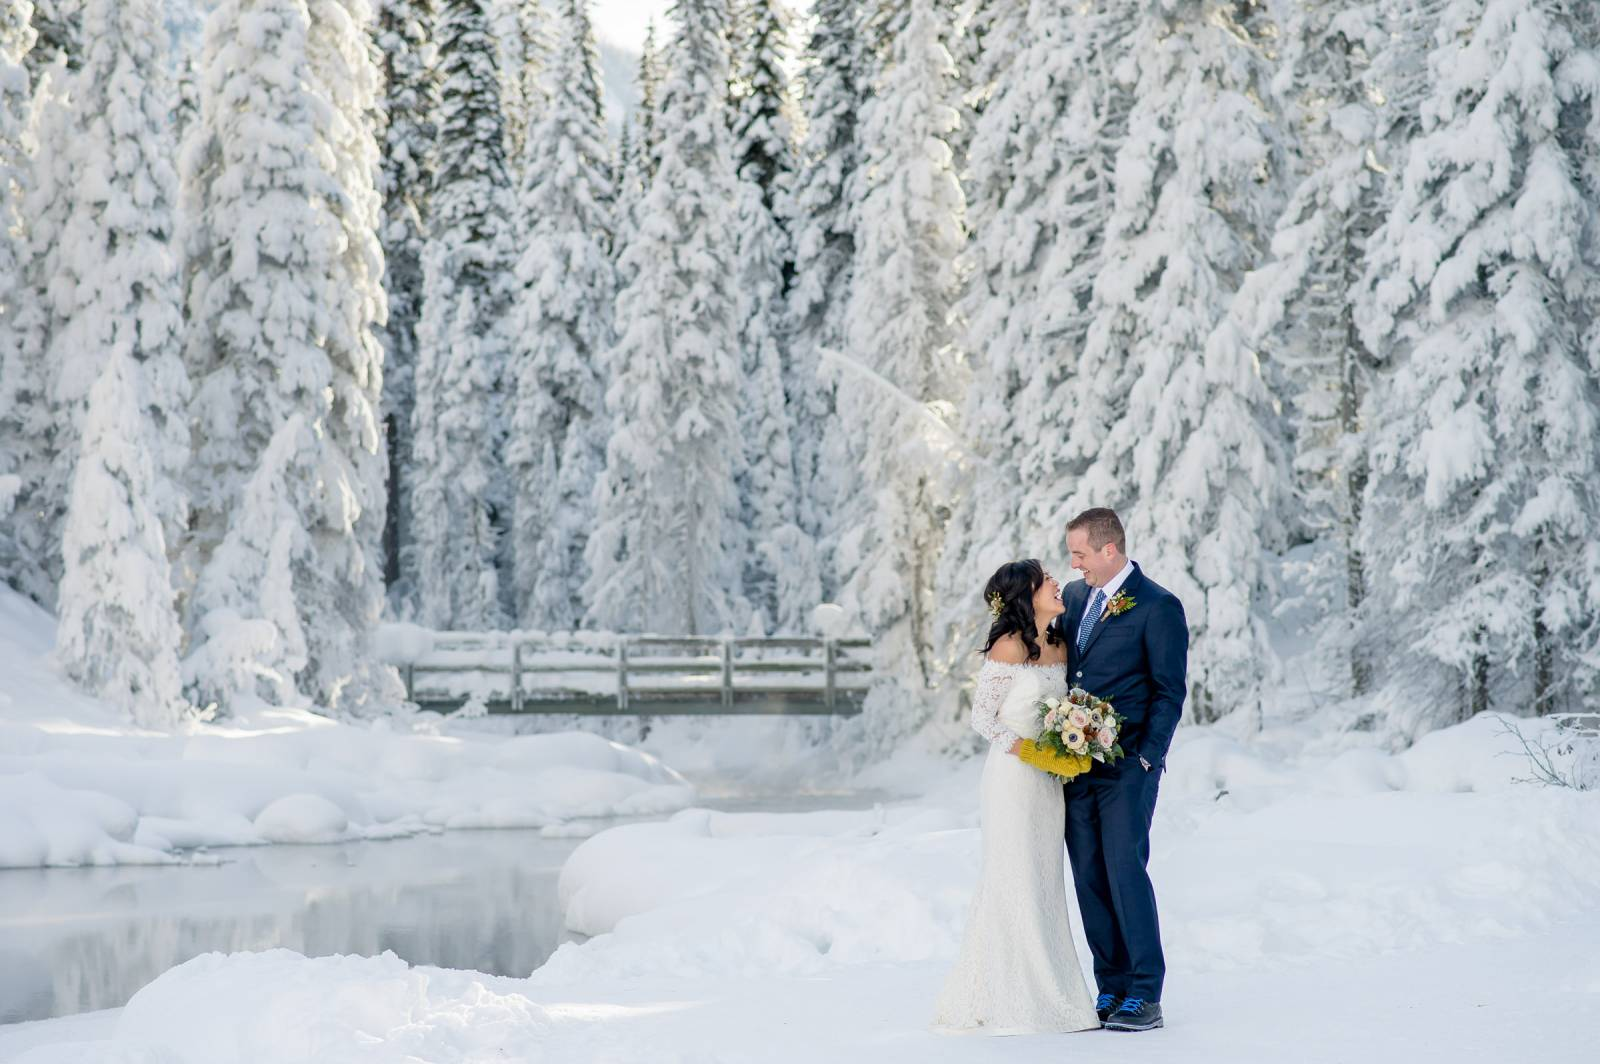 Winter wedding tips wedding tips we can lose the good photo light as early as 2pm in some winter months so make sure you plan your portrait time to take advantage of the best light junglespirit Image collections